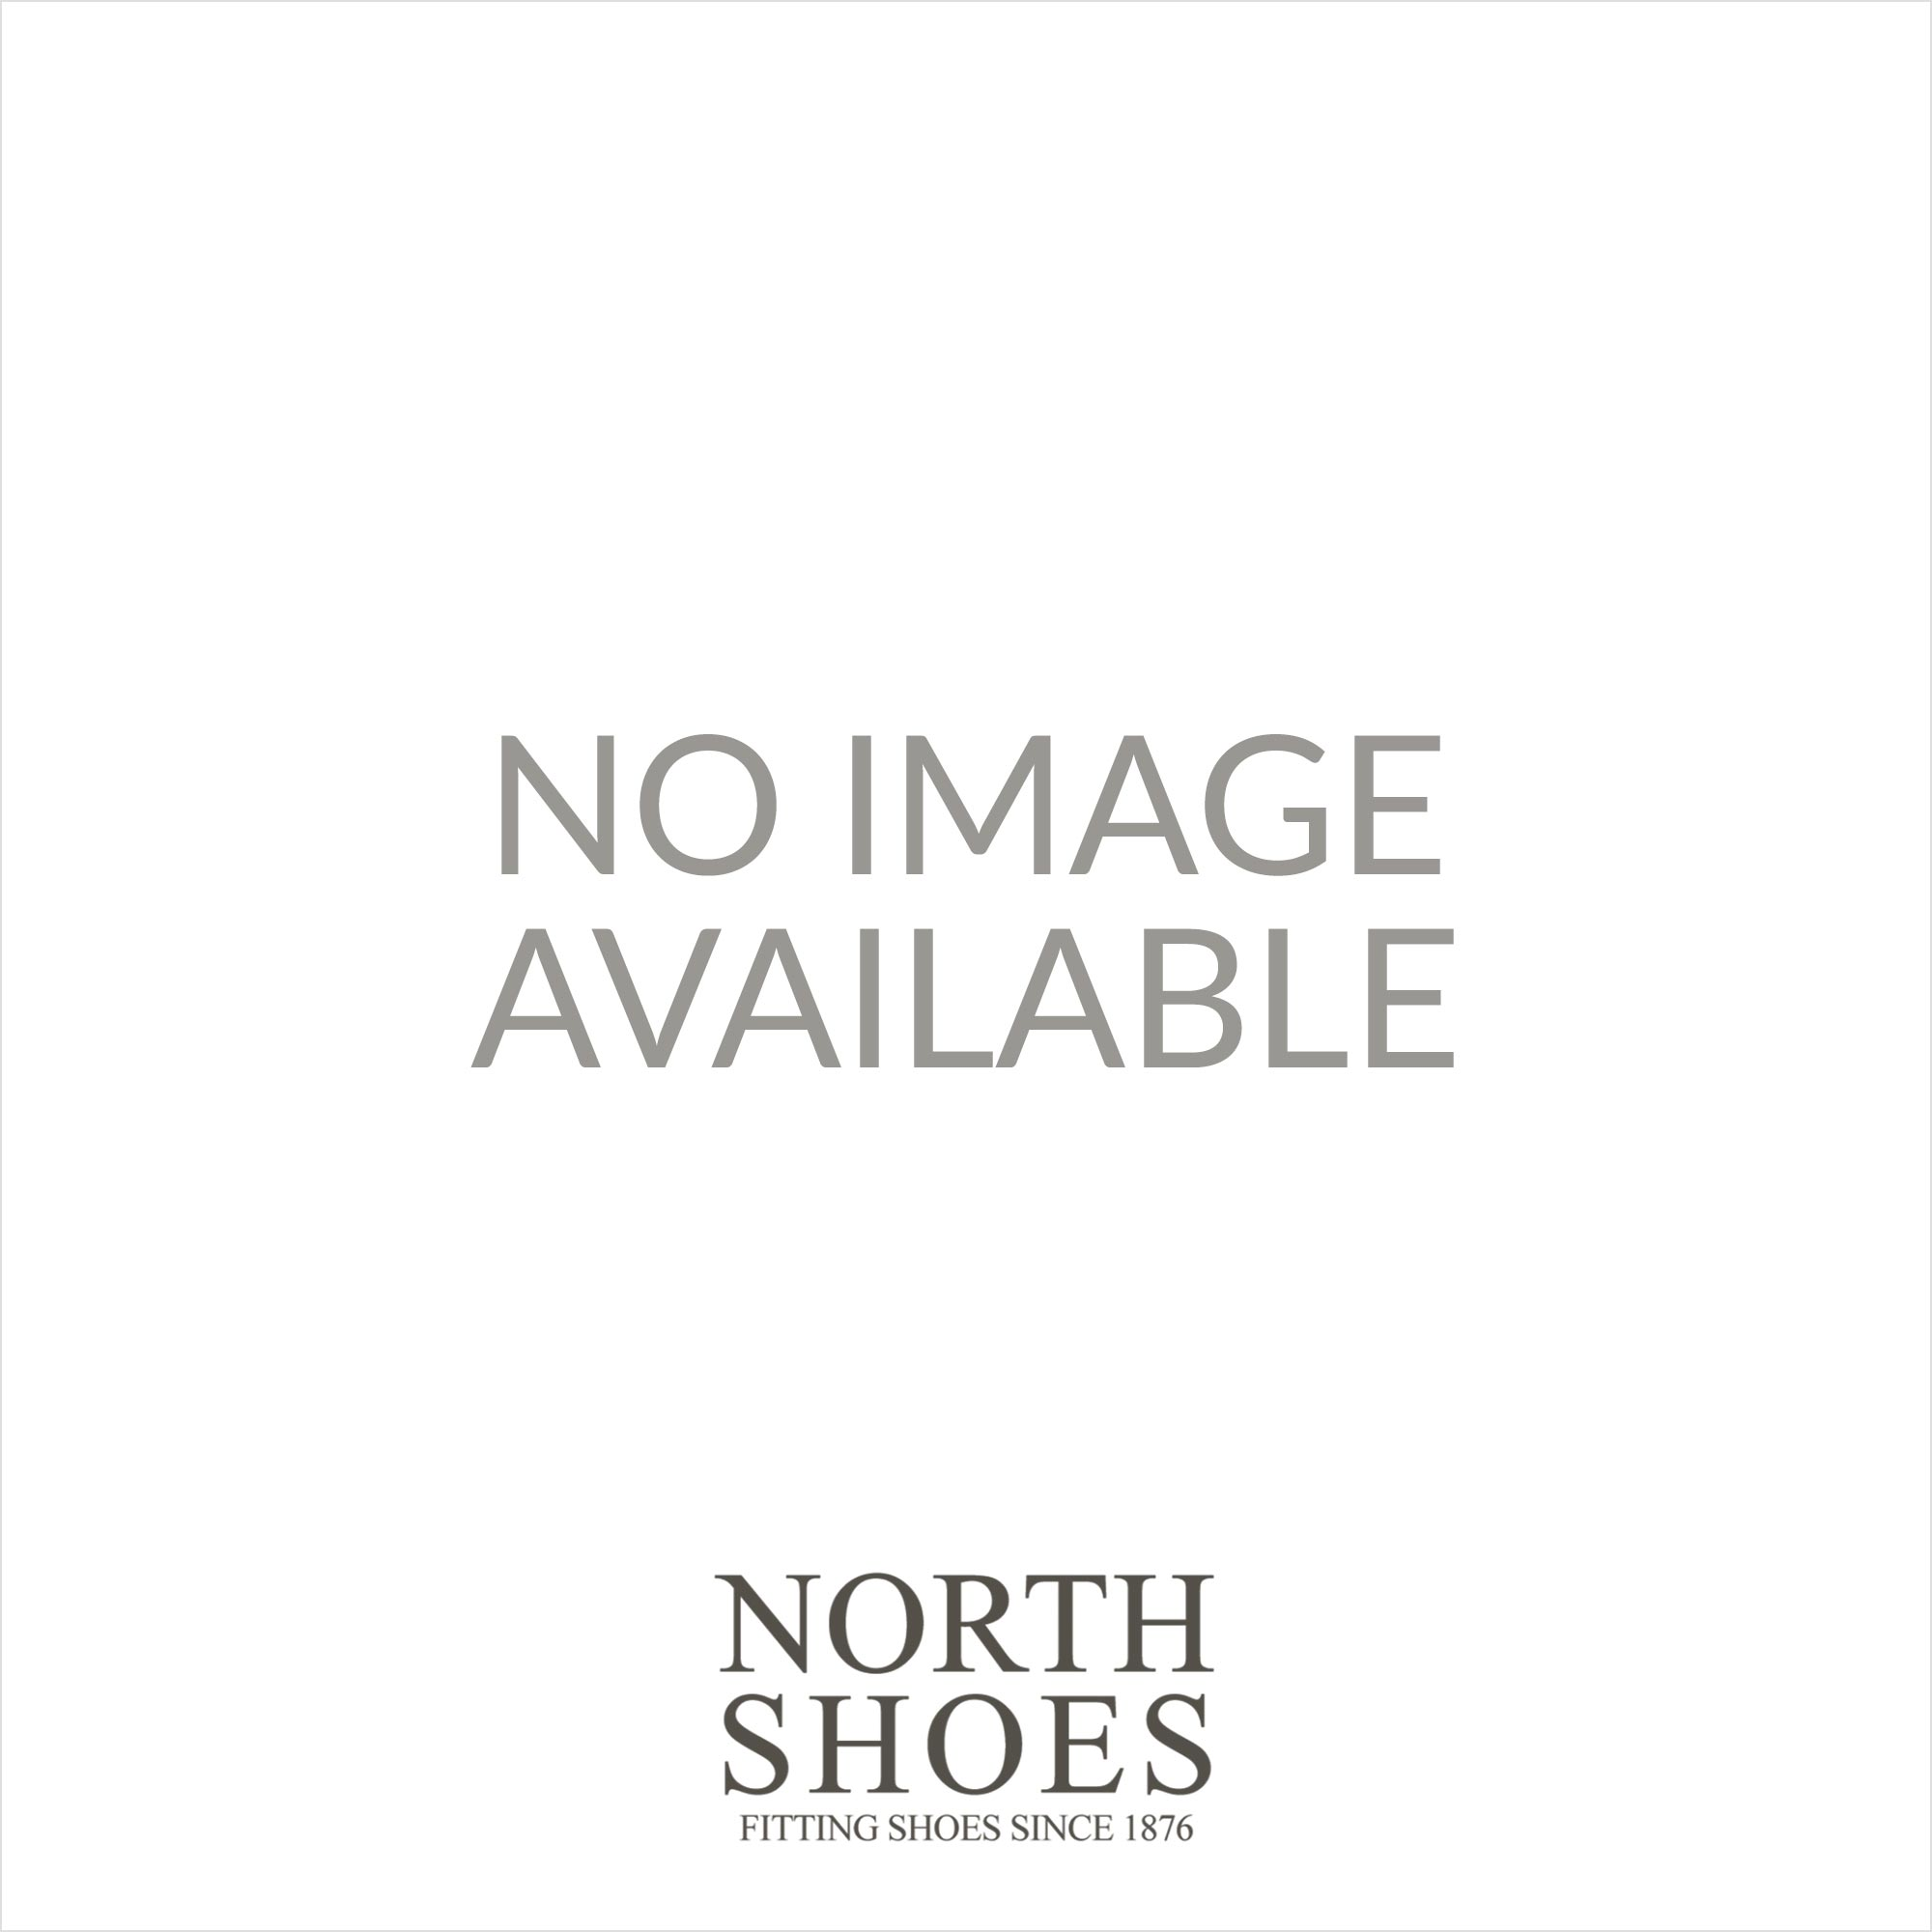 Barker Shoe Sale And Seconds